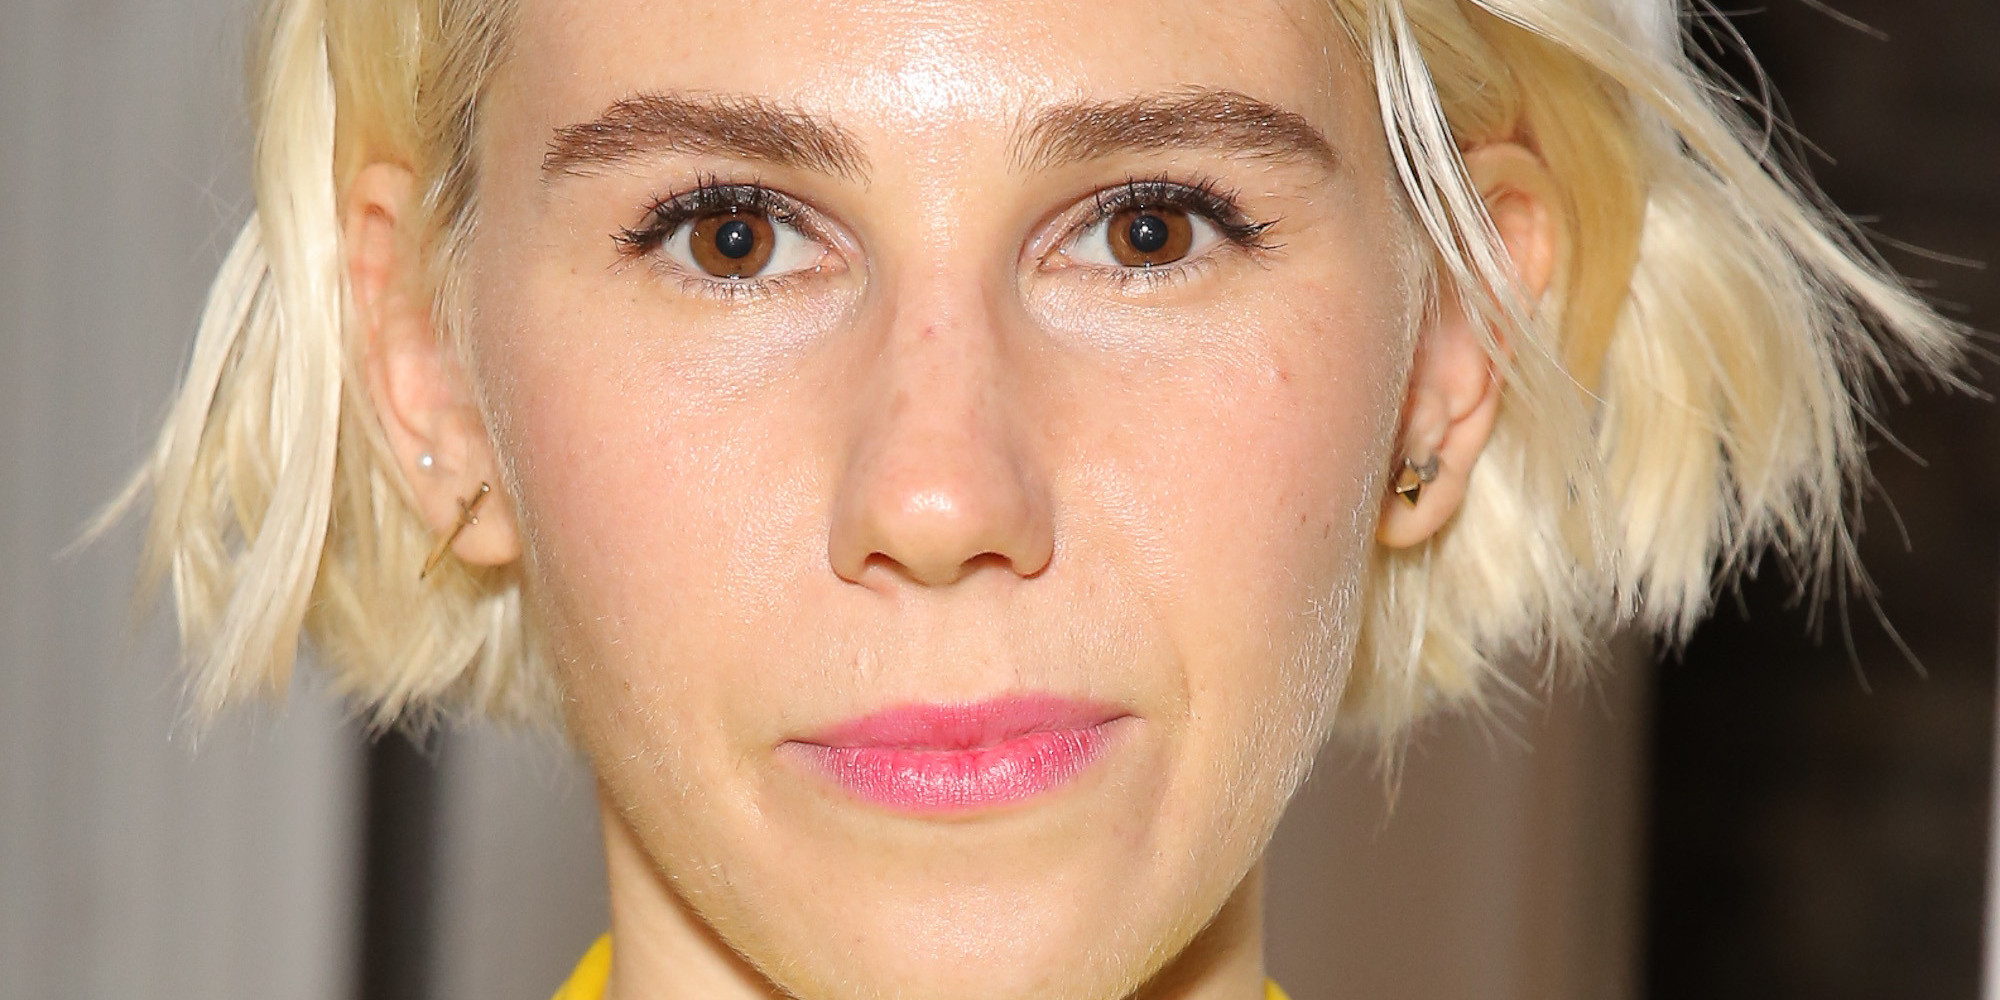 zosia mamet goes platinum blond, just like lena dunham | huffpost